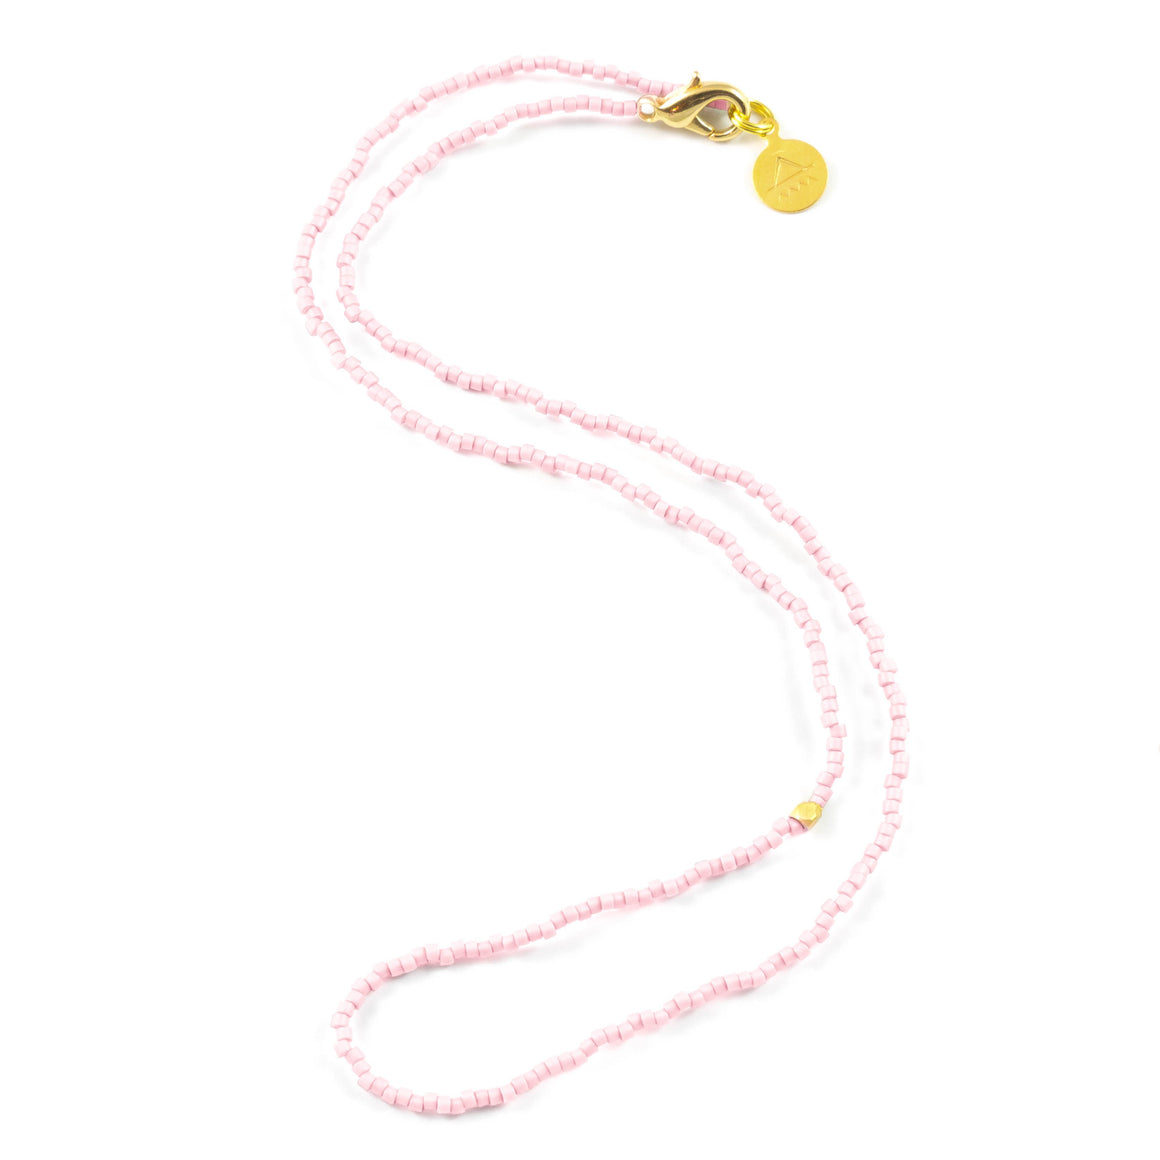 Blush One of a Kind Necklace in Gold